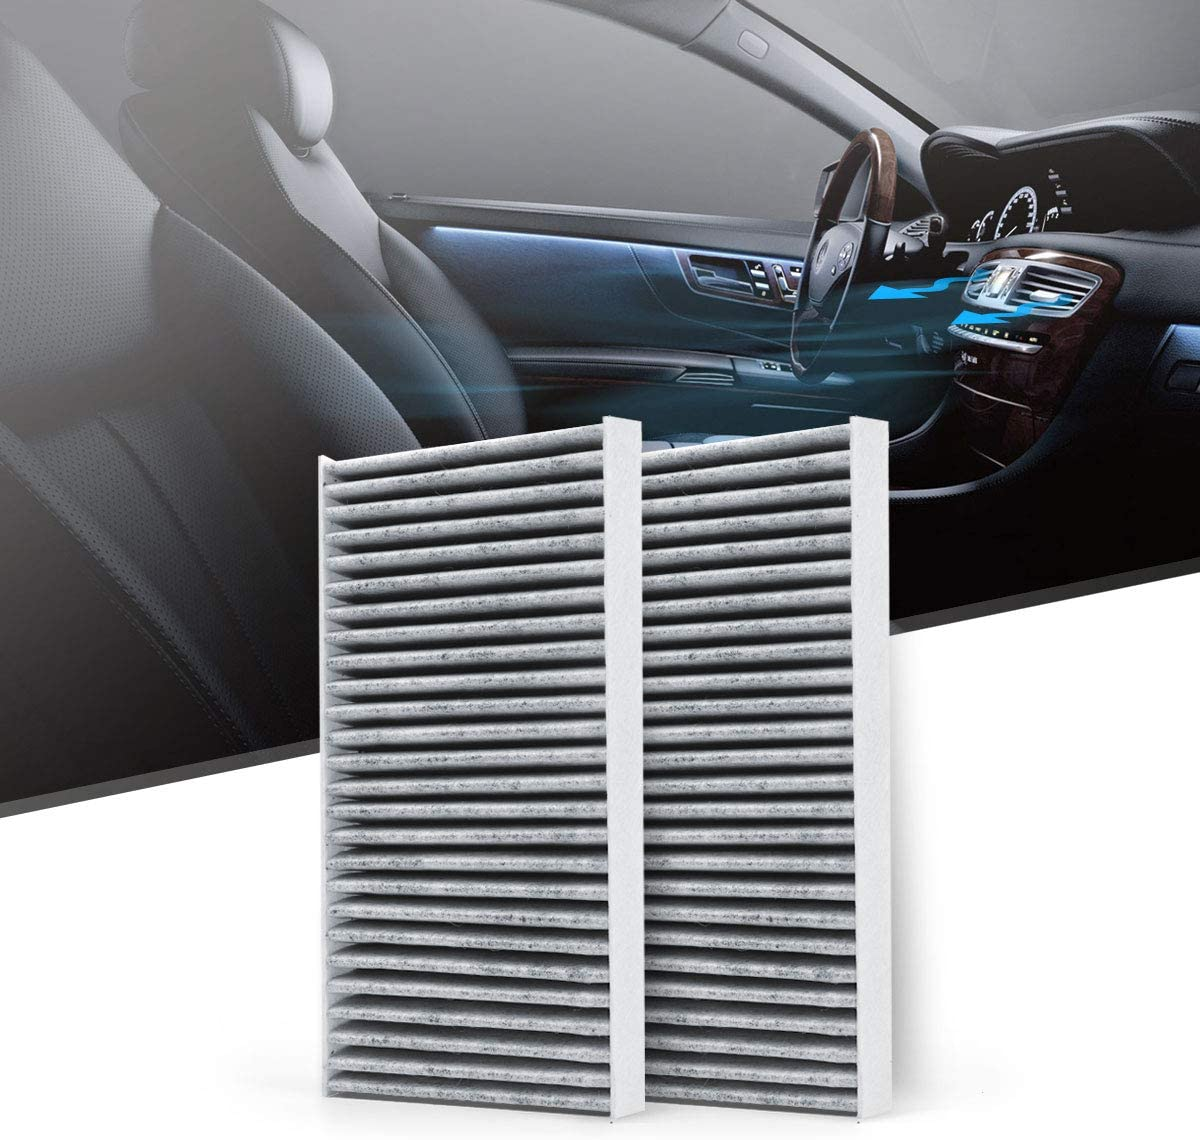 CF10135 includes Activated Carbon Replacement for Honda//Acura KAFEEK Cabin Air Filter KA10135